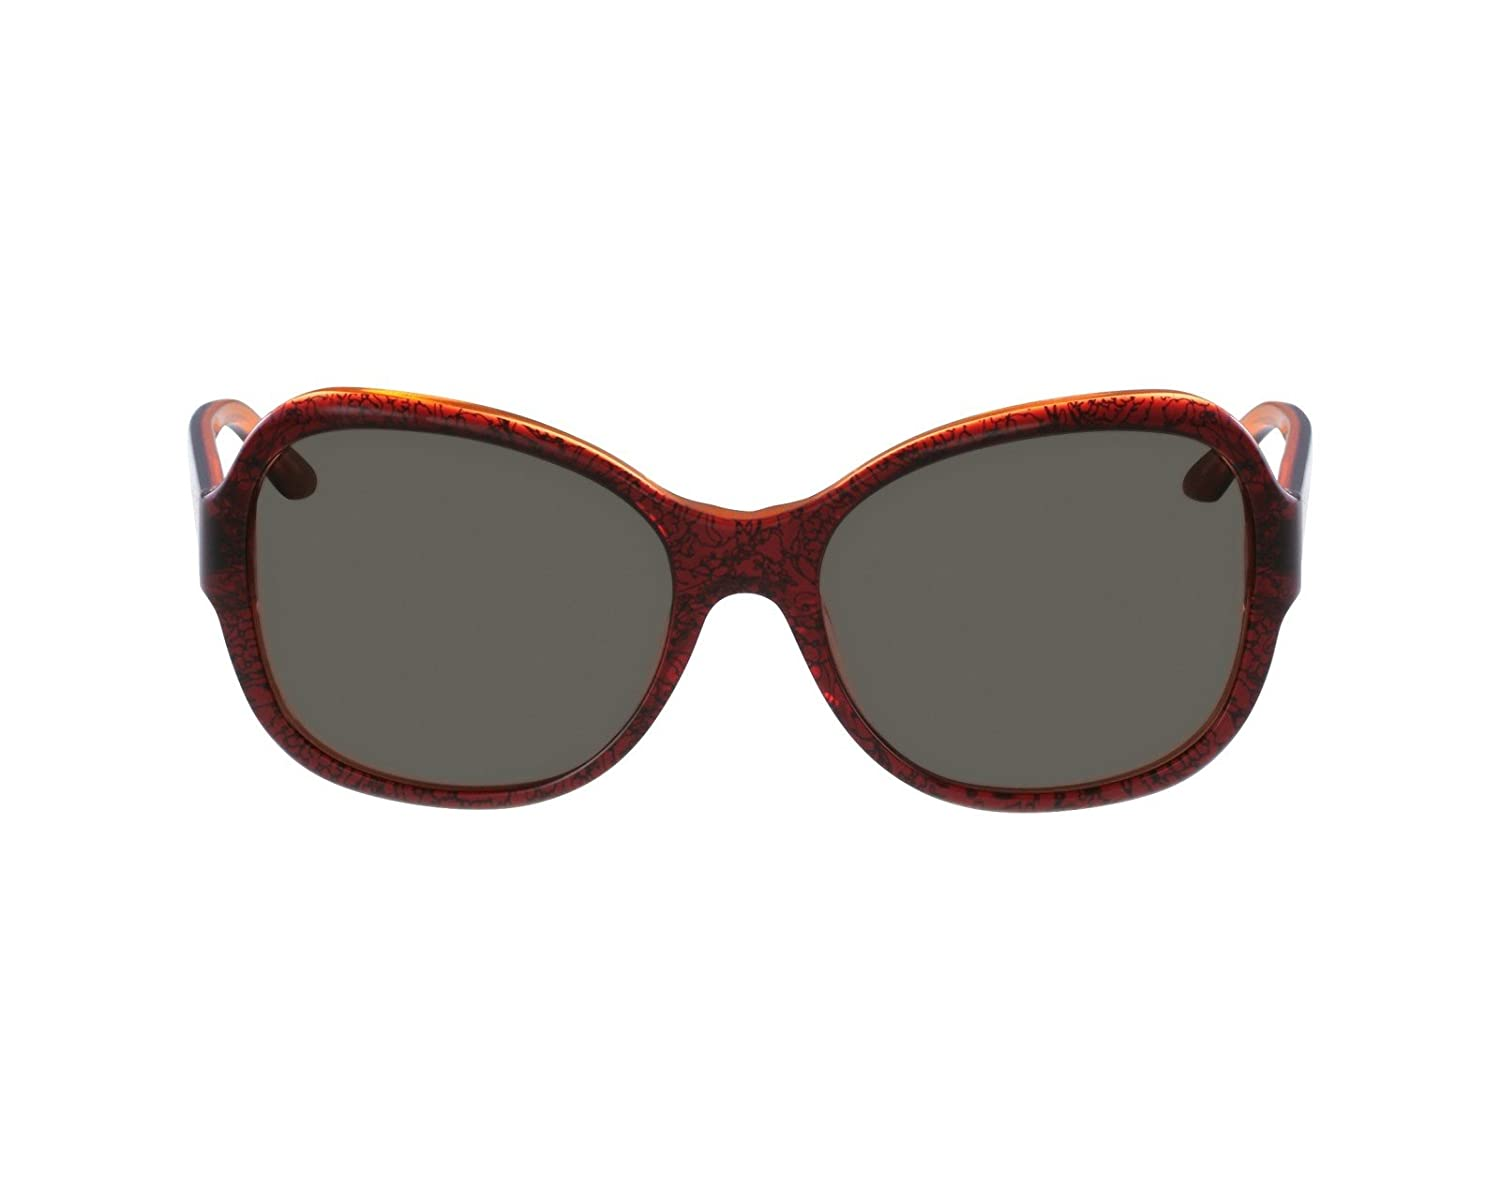 75e294cfa6c0 Versace Women s 4259 Baroque Bordeaux Transparent   Orange Transparent  Frame Brown Lens Plastic Sunglasses  Amazon.co.uk  Clothing